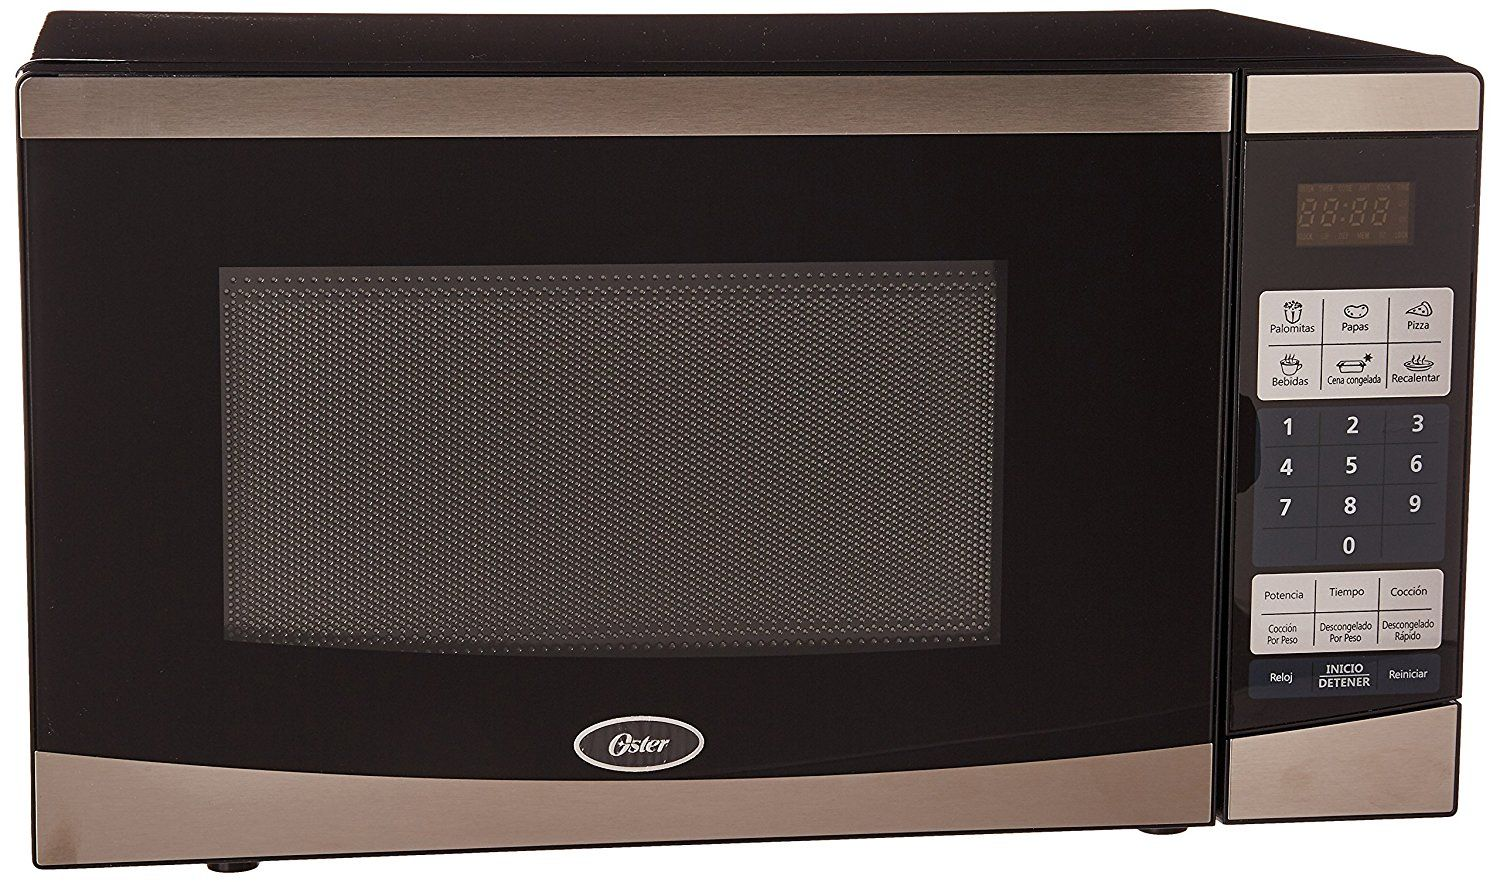 Ft Compact Microwave Stainless Steel Black Ogyu701